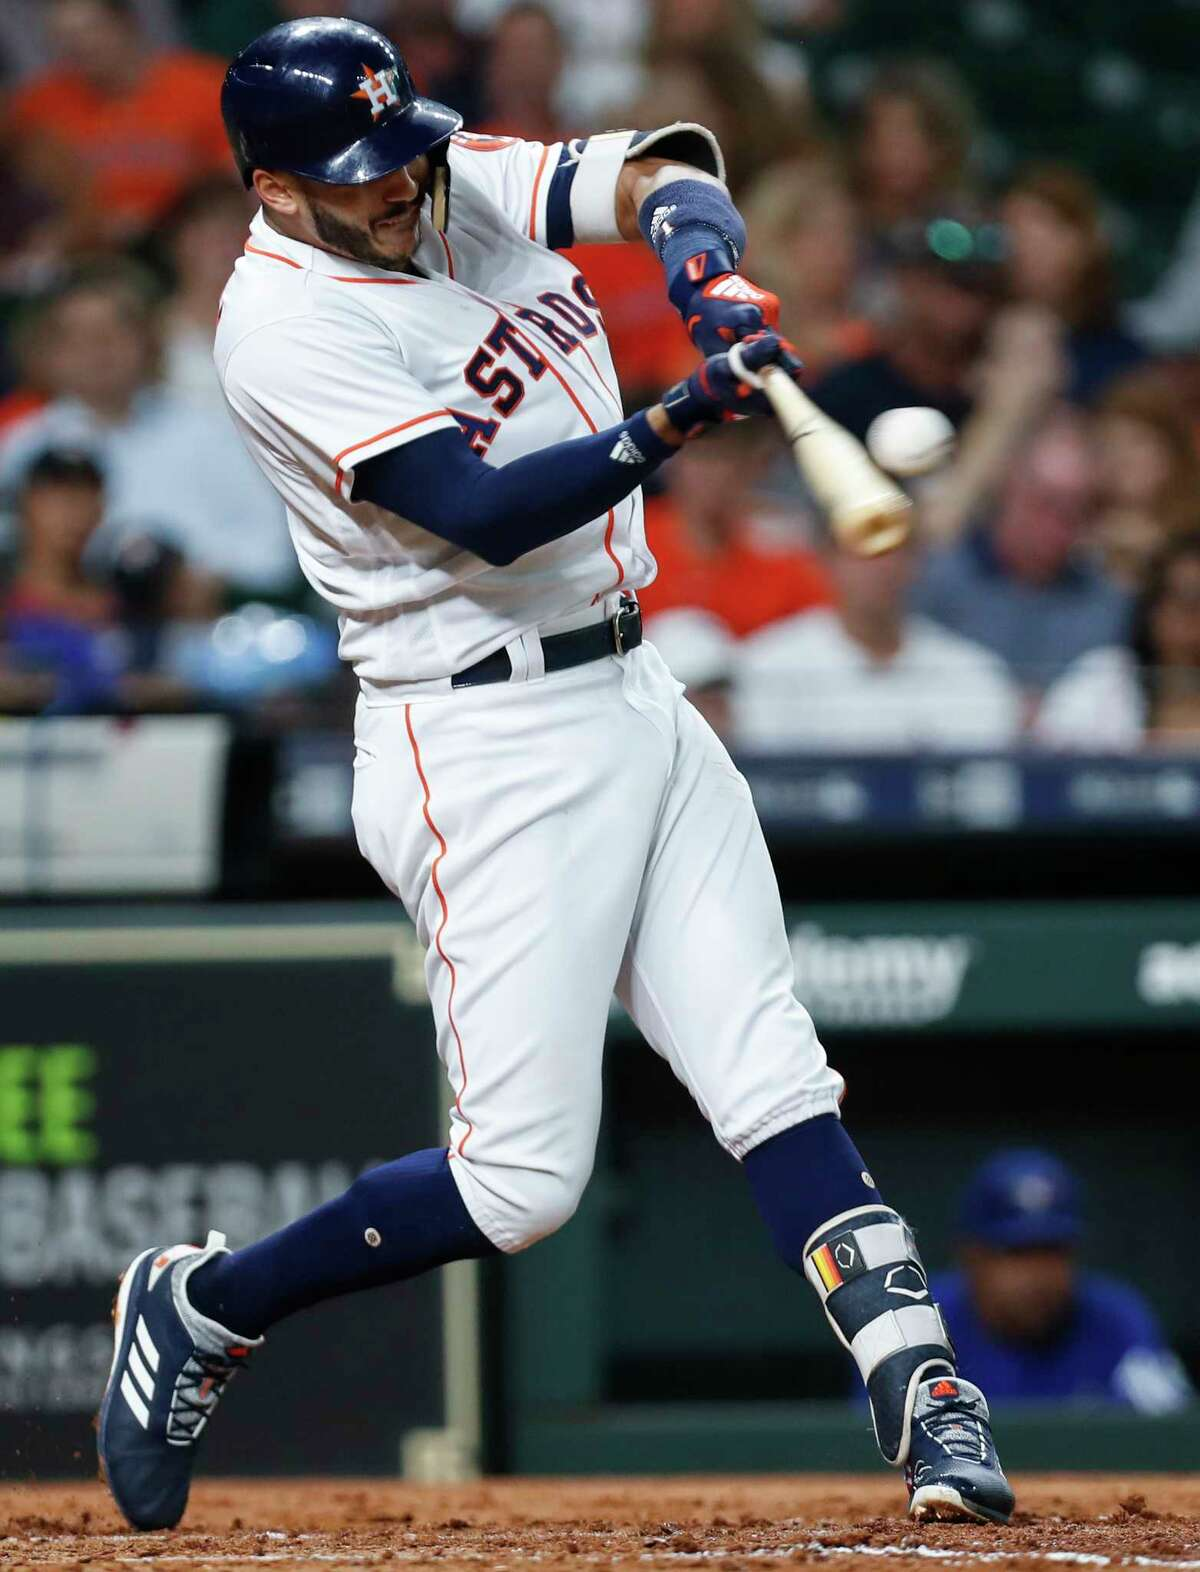 Houston Astros shortstop Carlos Correa singles off of Toronto Blue Jays starting pitcher J.A. Happ during the third inning of a major league baseball game at Minute Maid Park on Monday, June 25, 2018, in Houston.